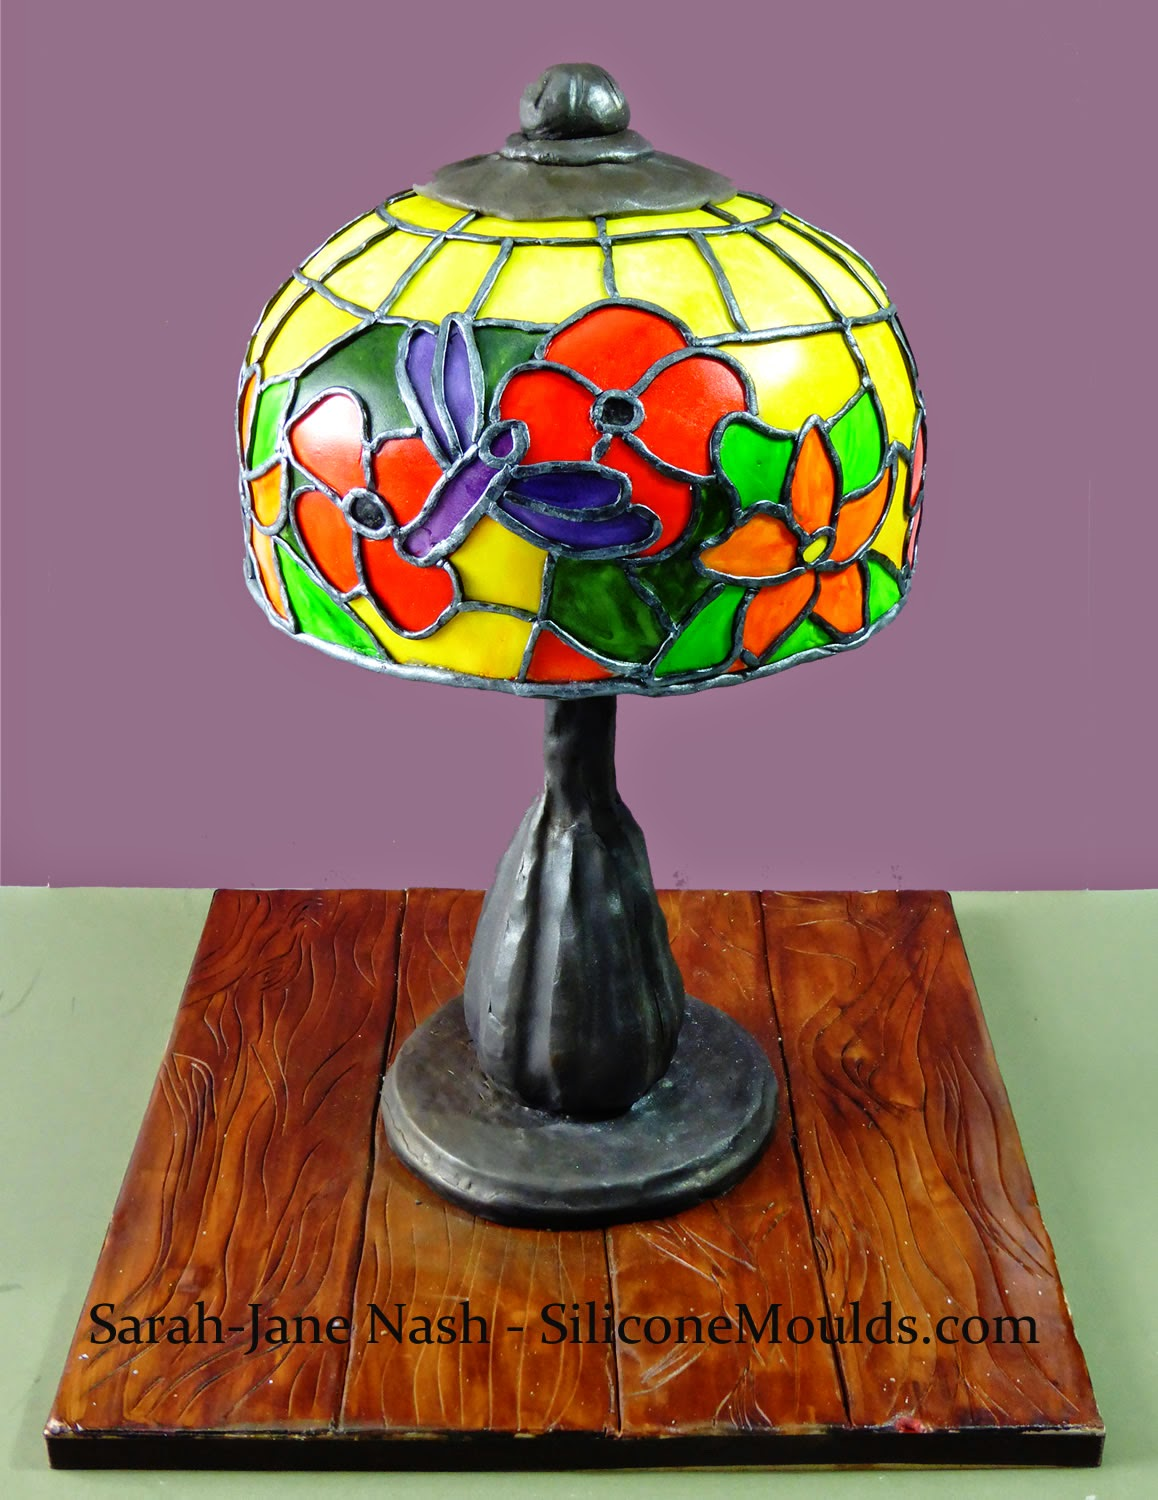 structural and brightly coloured novelty tiffany lamp / table lamp cake